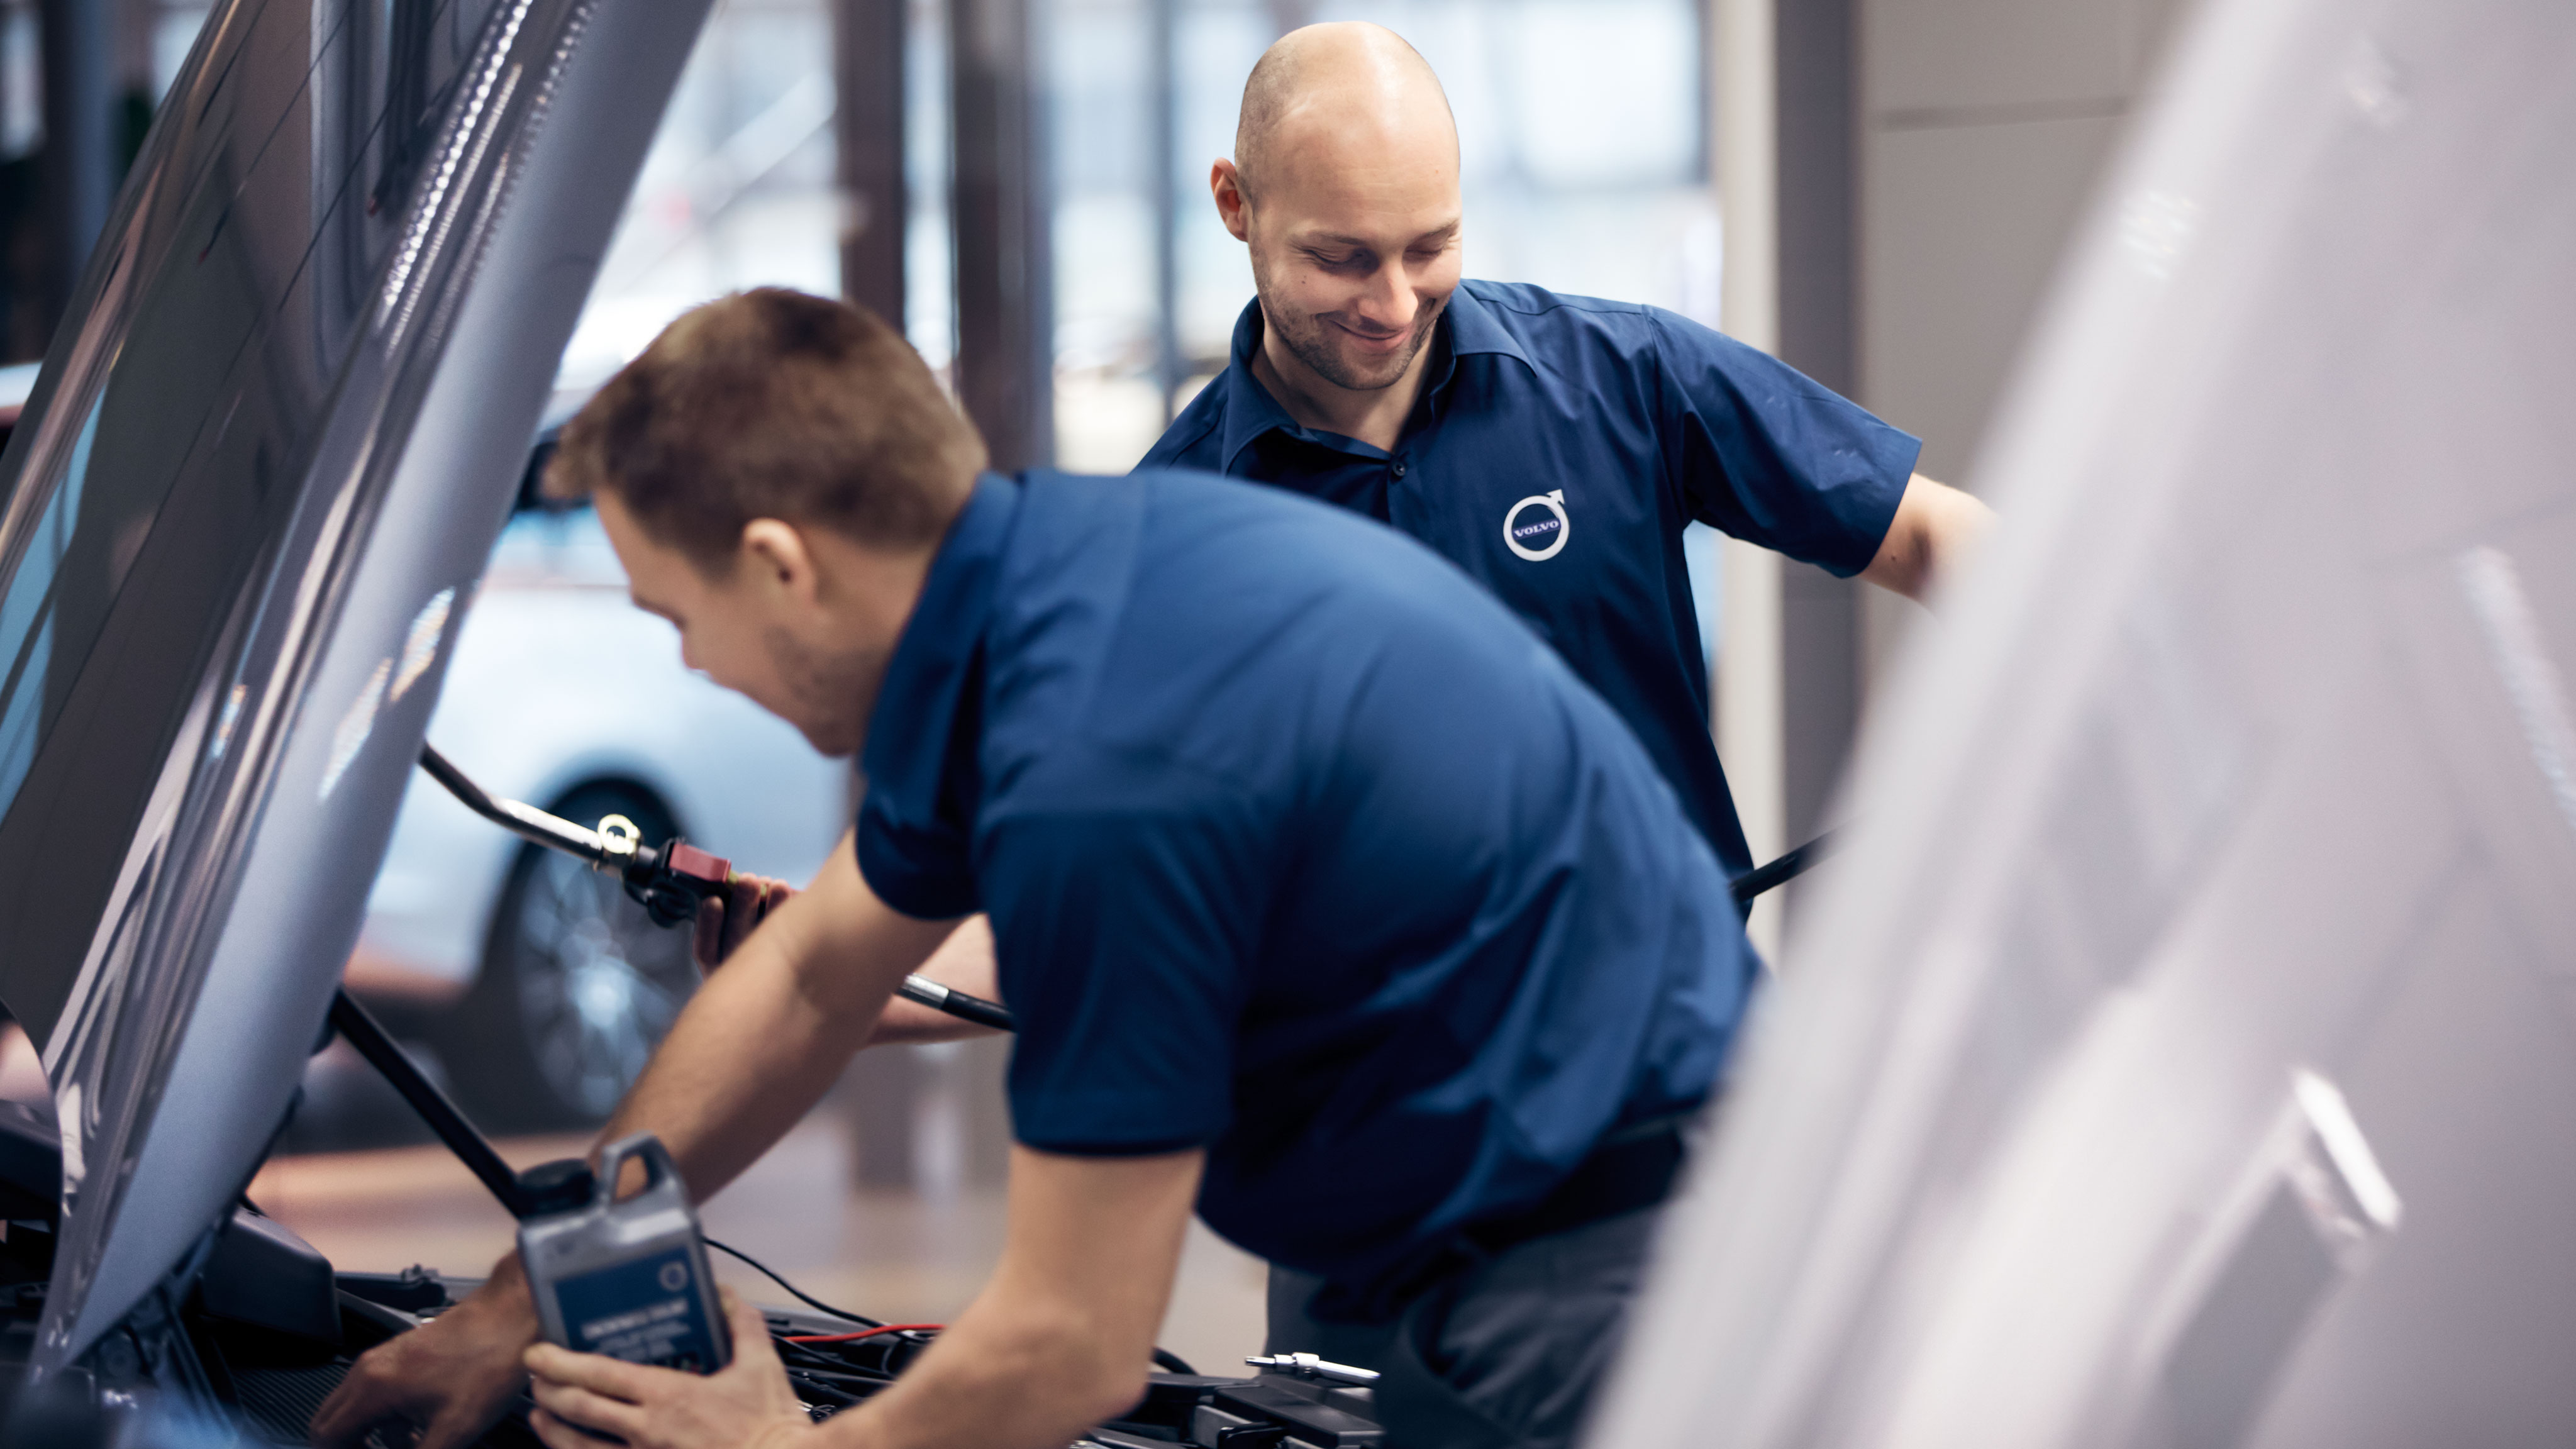 As a technician at a Volvo Cars Retailer, you will work as part of a multi-skilled team